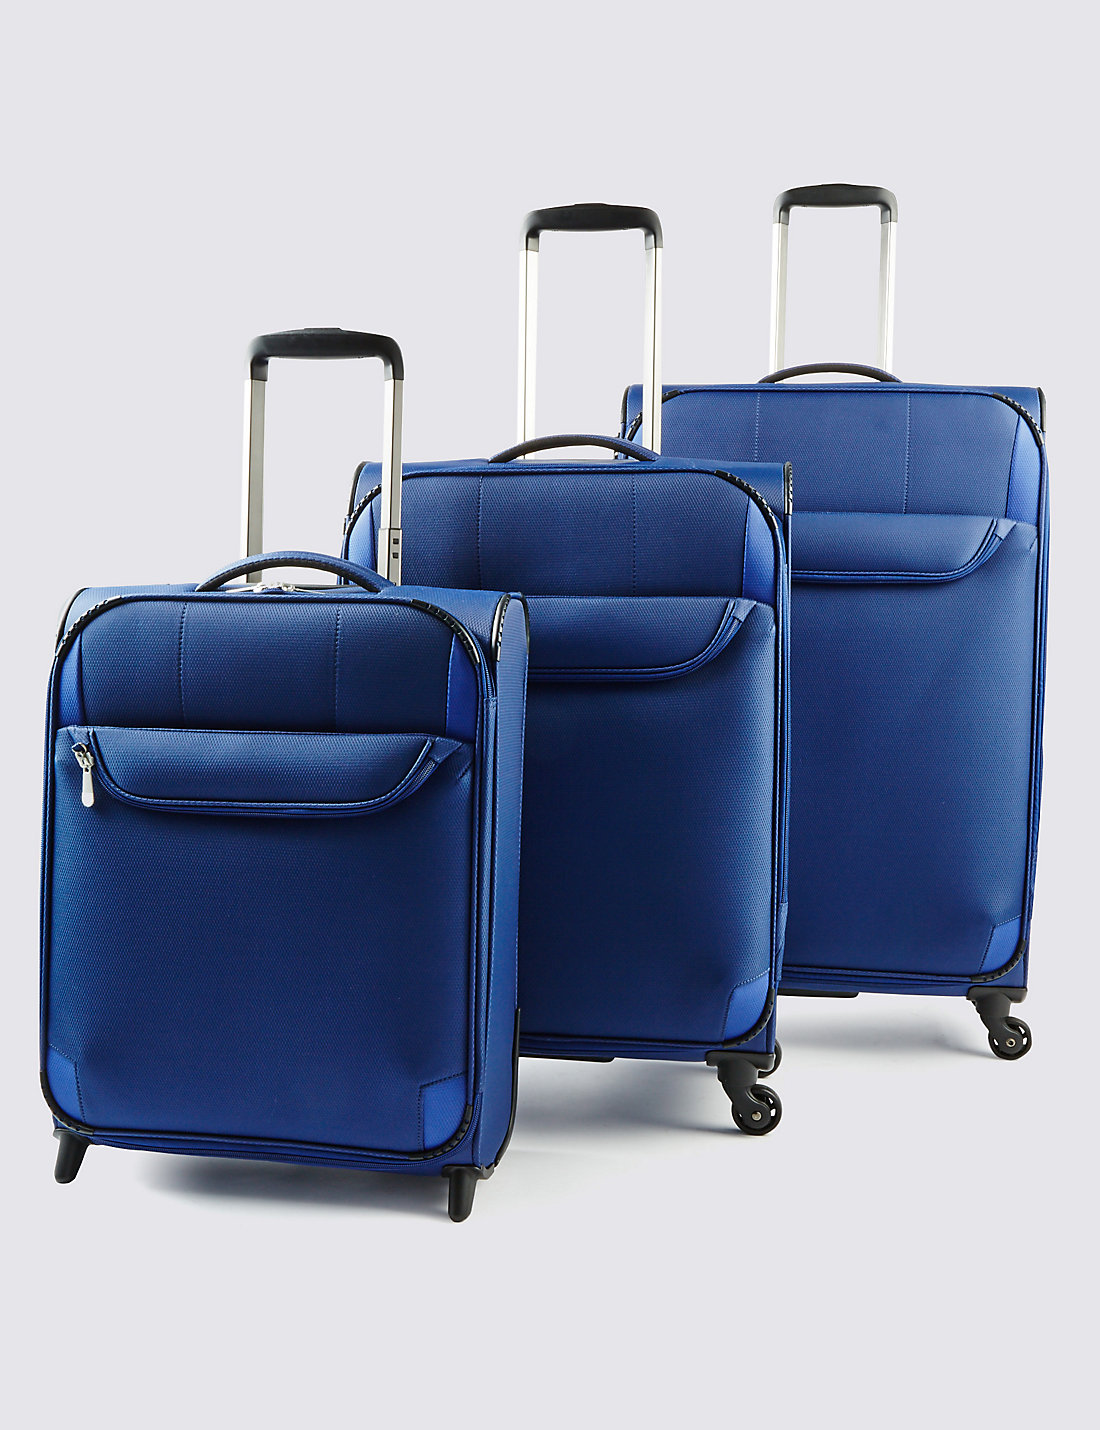 Large 4 Wheel Super Lightweight Suitcase | M&S